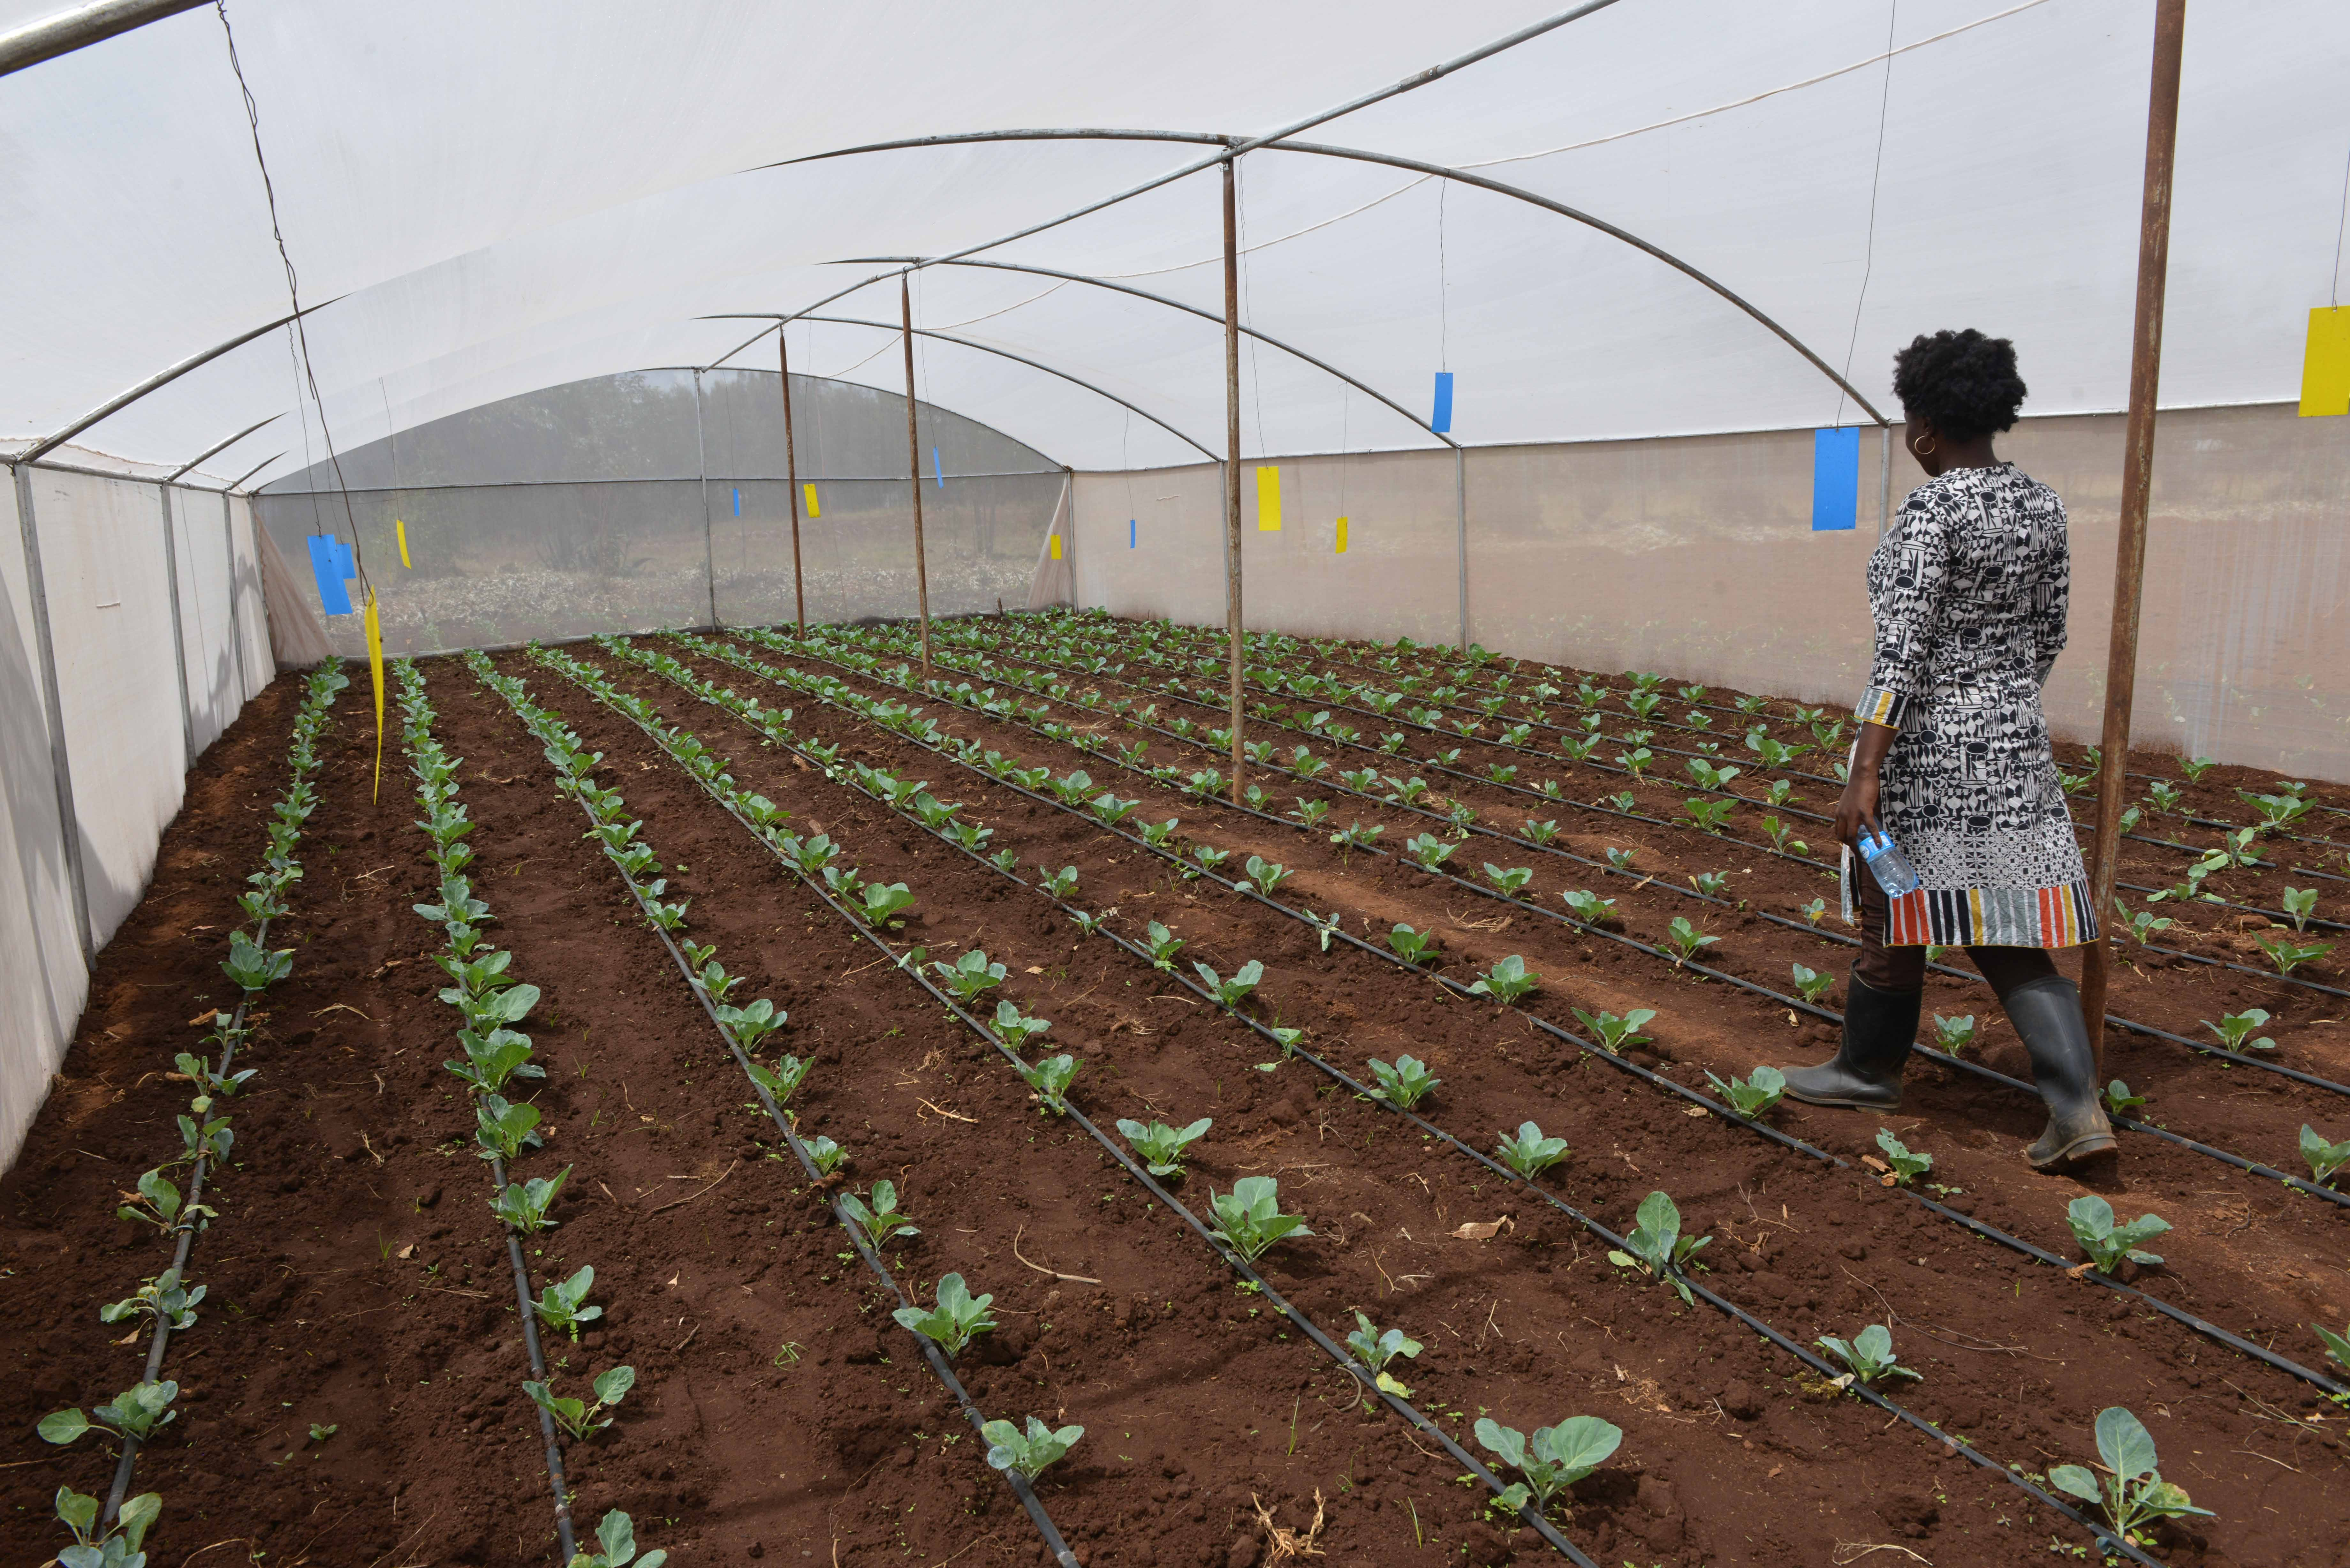 Woman walking through net house amid neat rows of vegetable plants.